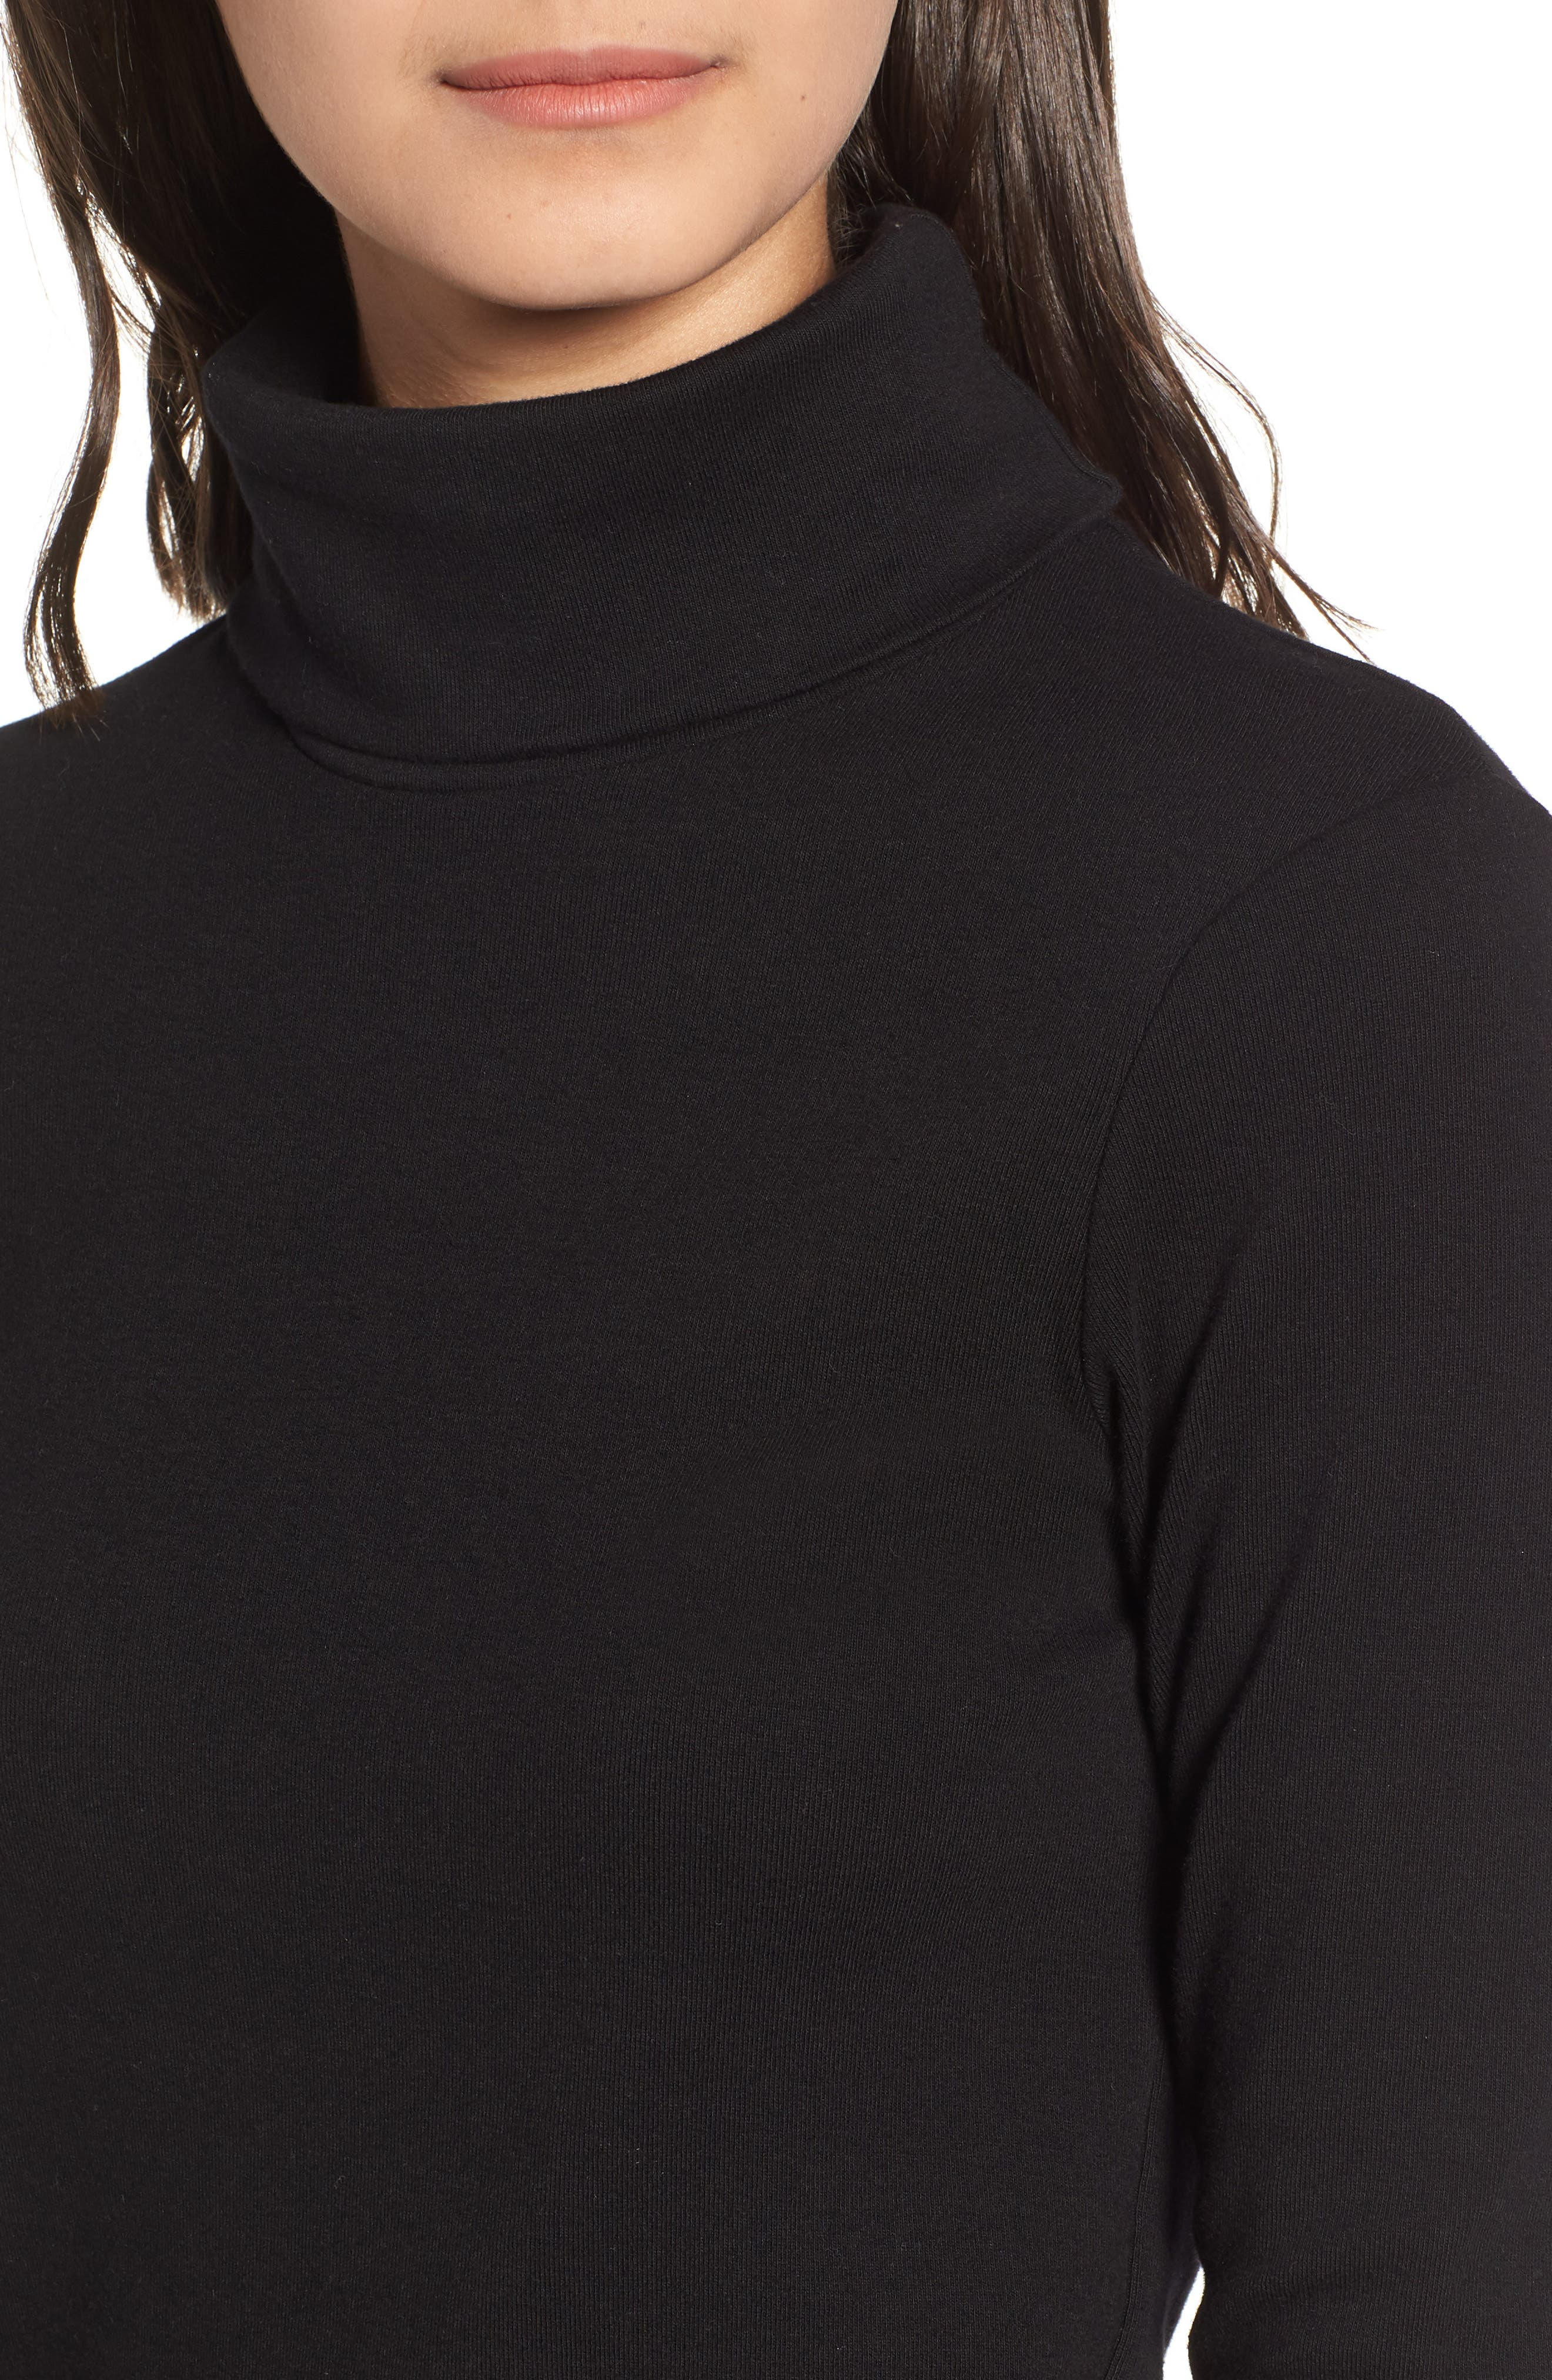 Turtleneck Stretch Cotton Crop Top,                             Alternate thumbnail 4, color,                             001